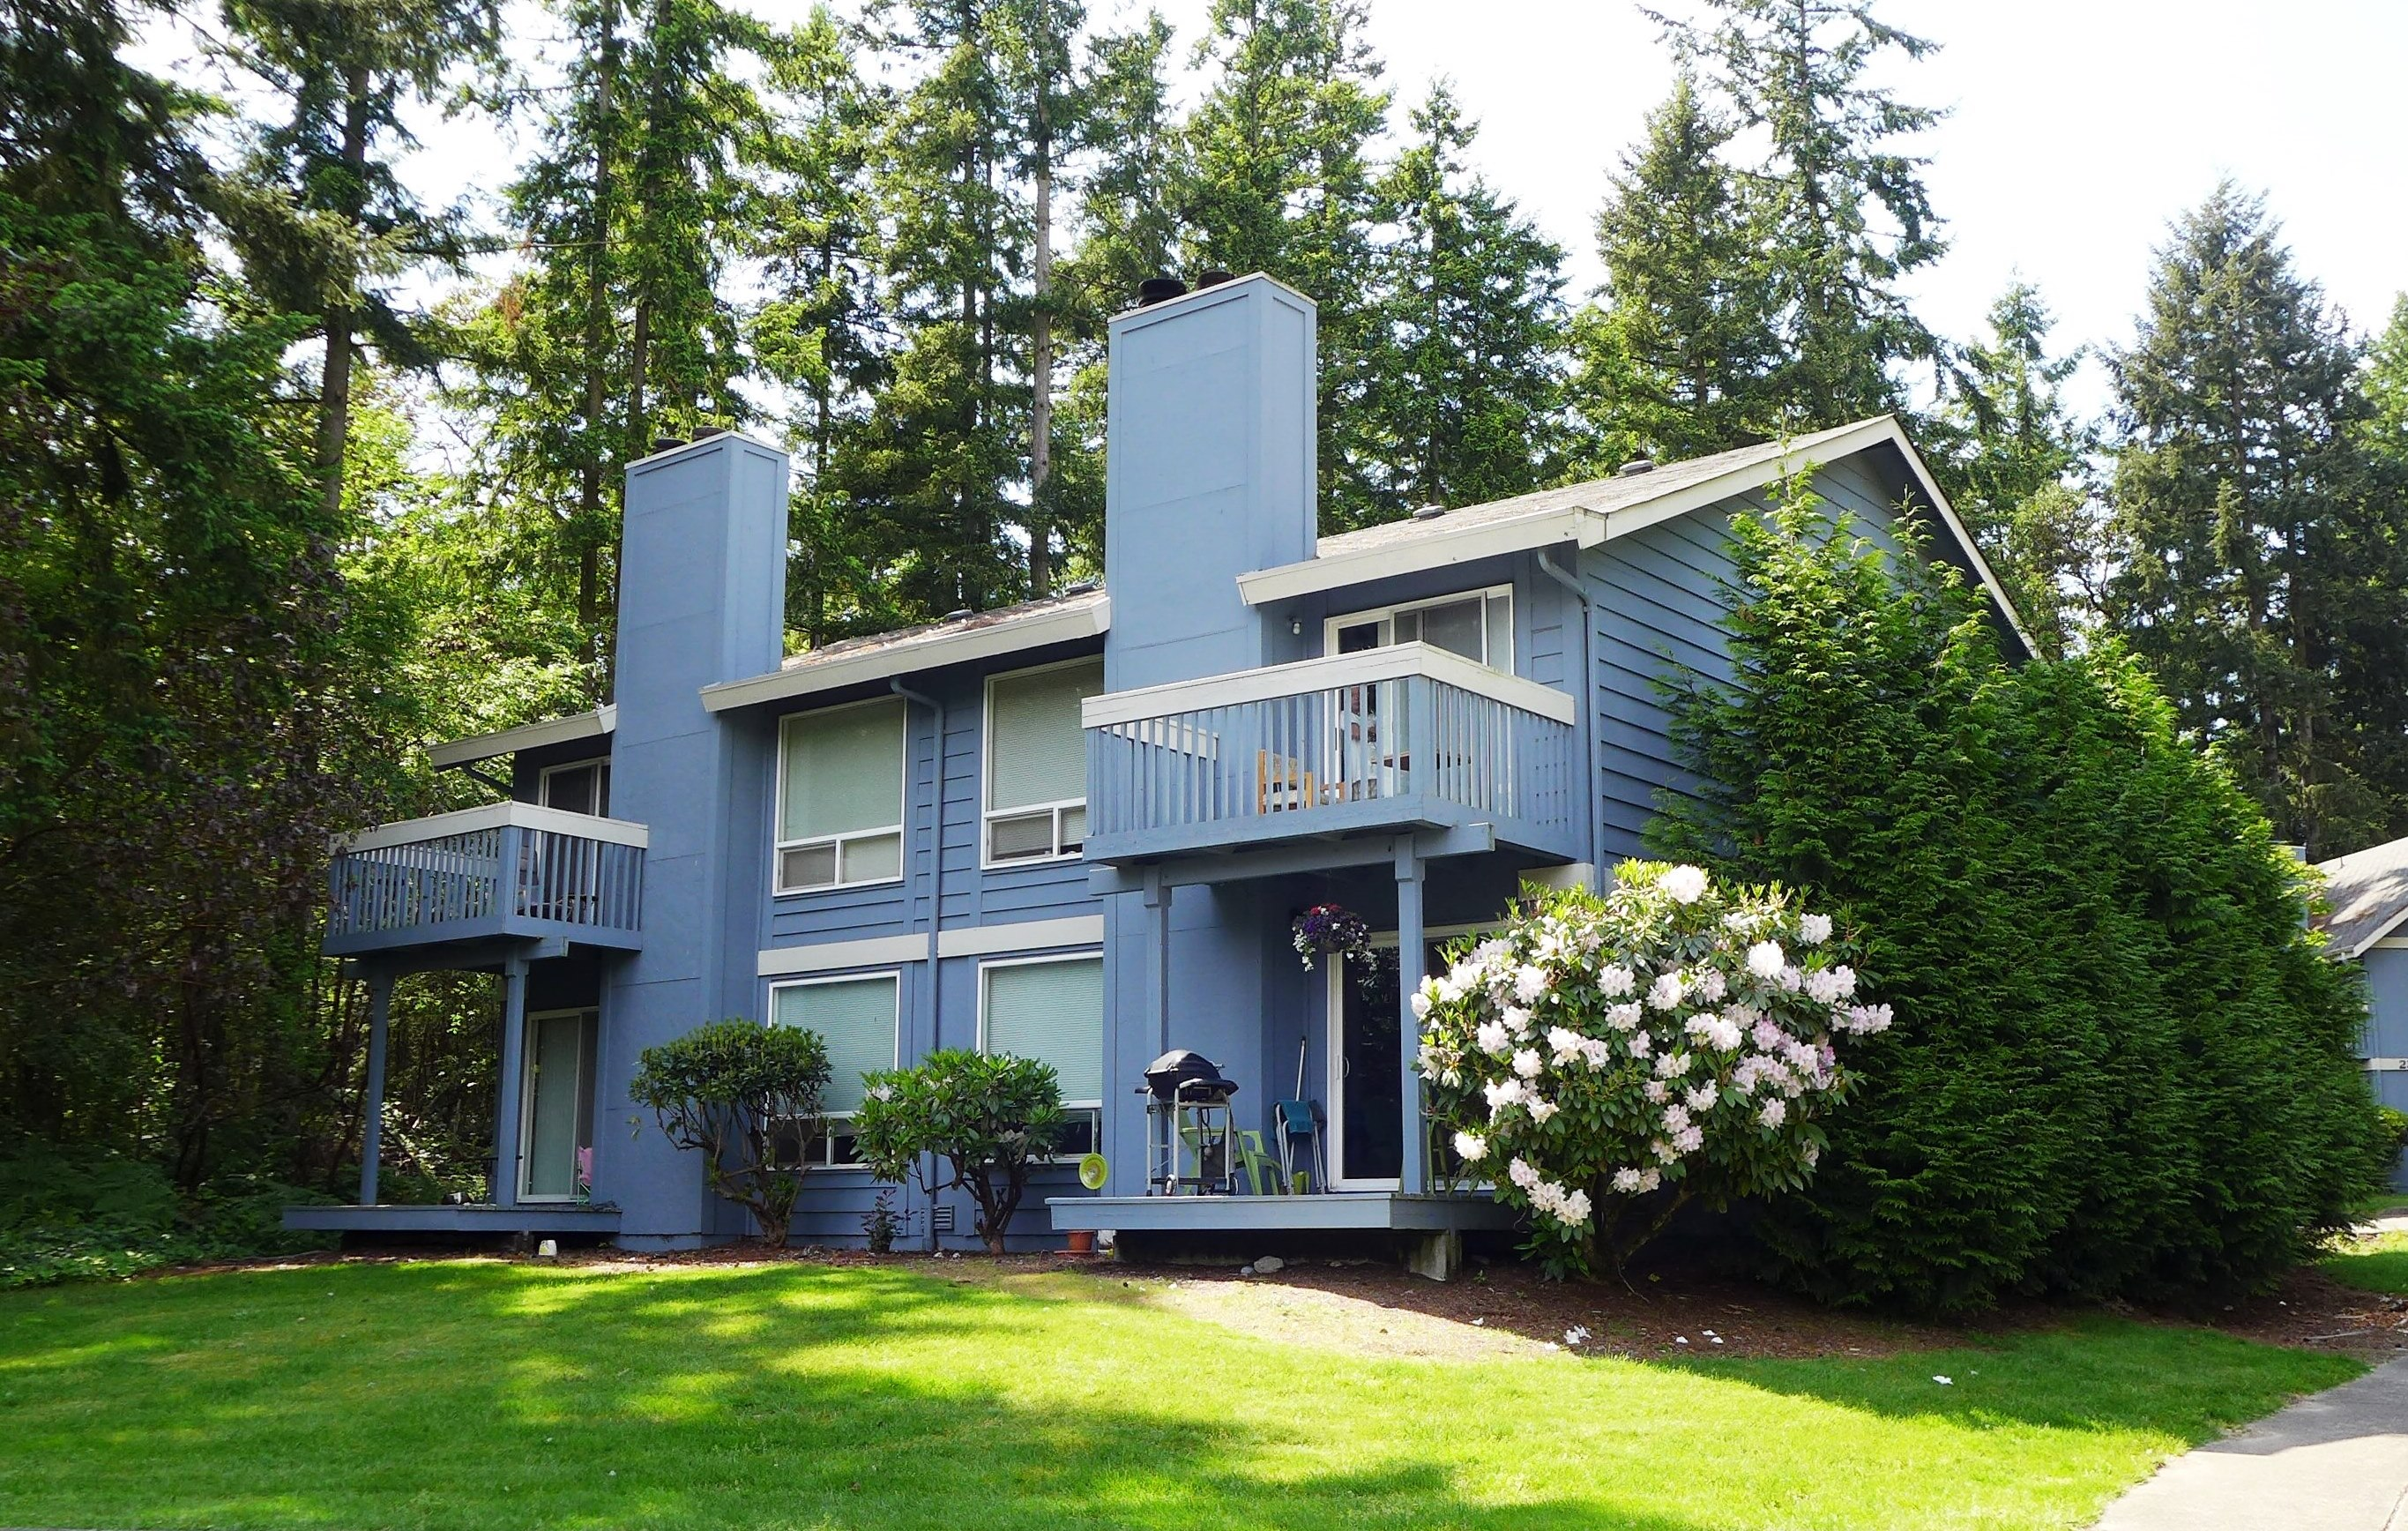 4 plex for sale in federal way 25 s 342nd place. Black Bedroom Furniture Sets. Home Design Ideas